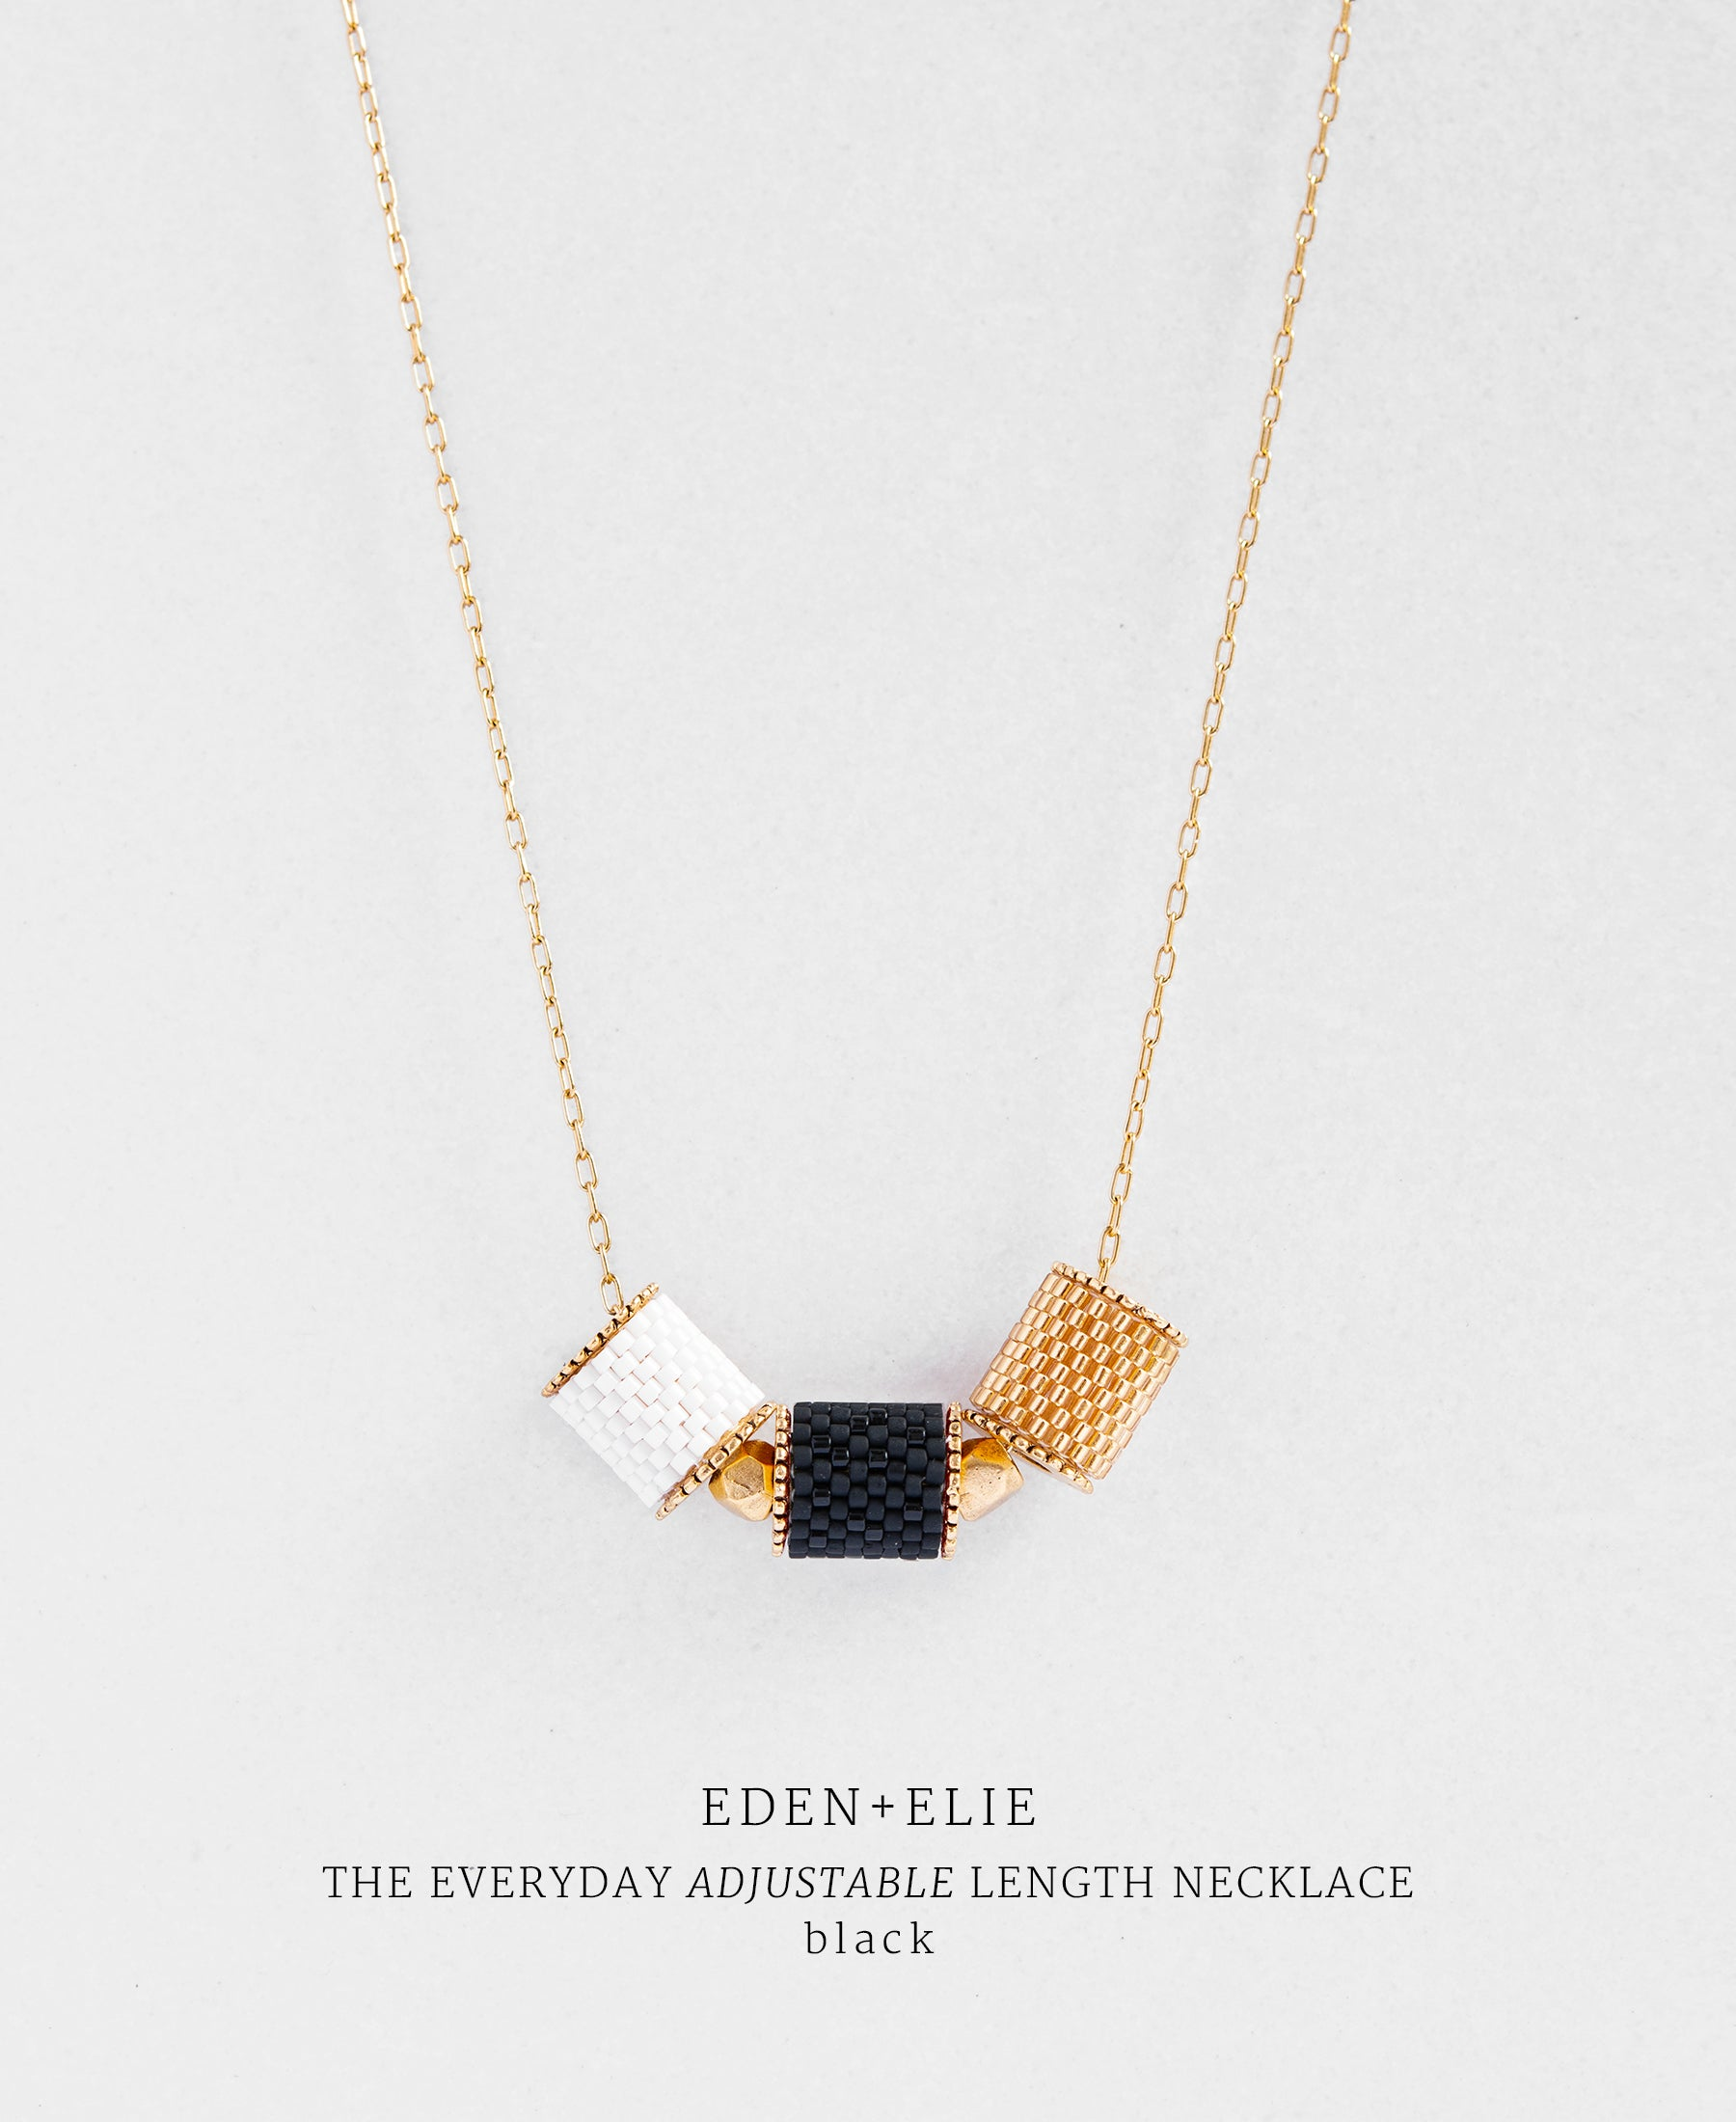 EDEN + ELIE Everyday adjustable length necklace - basic black